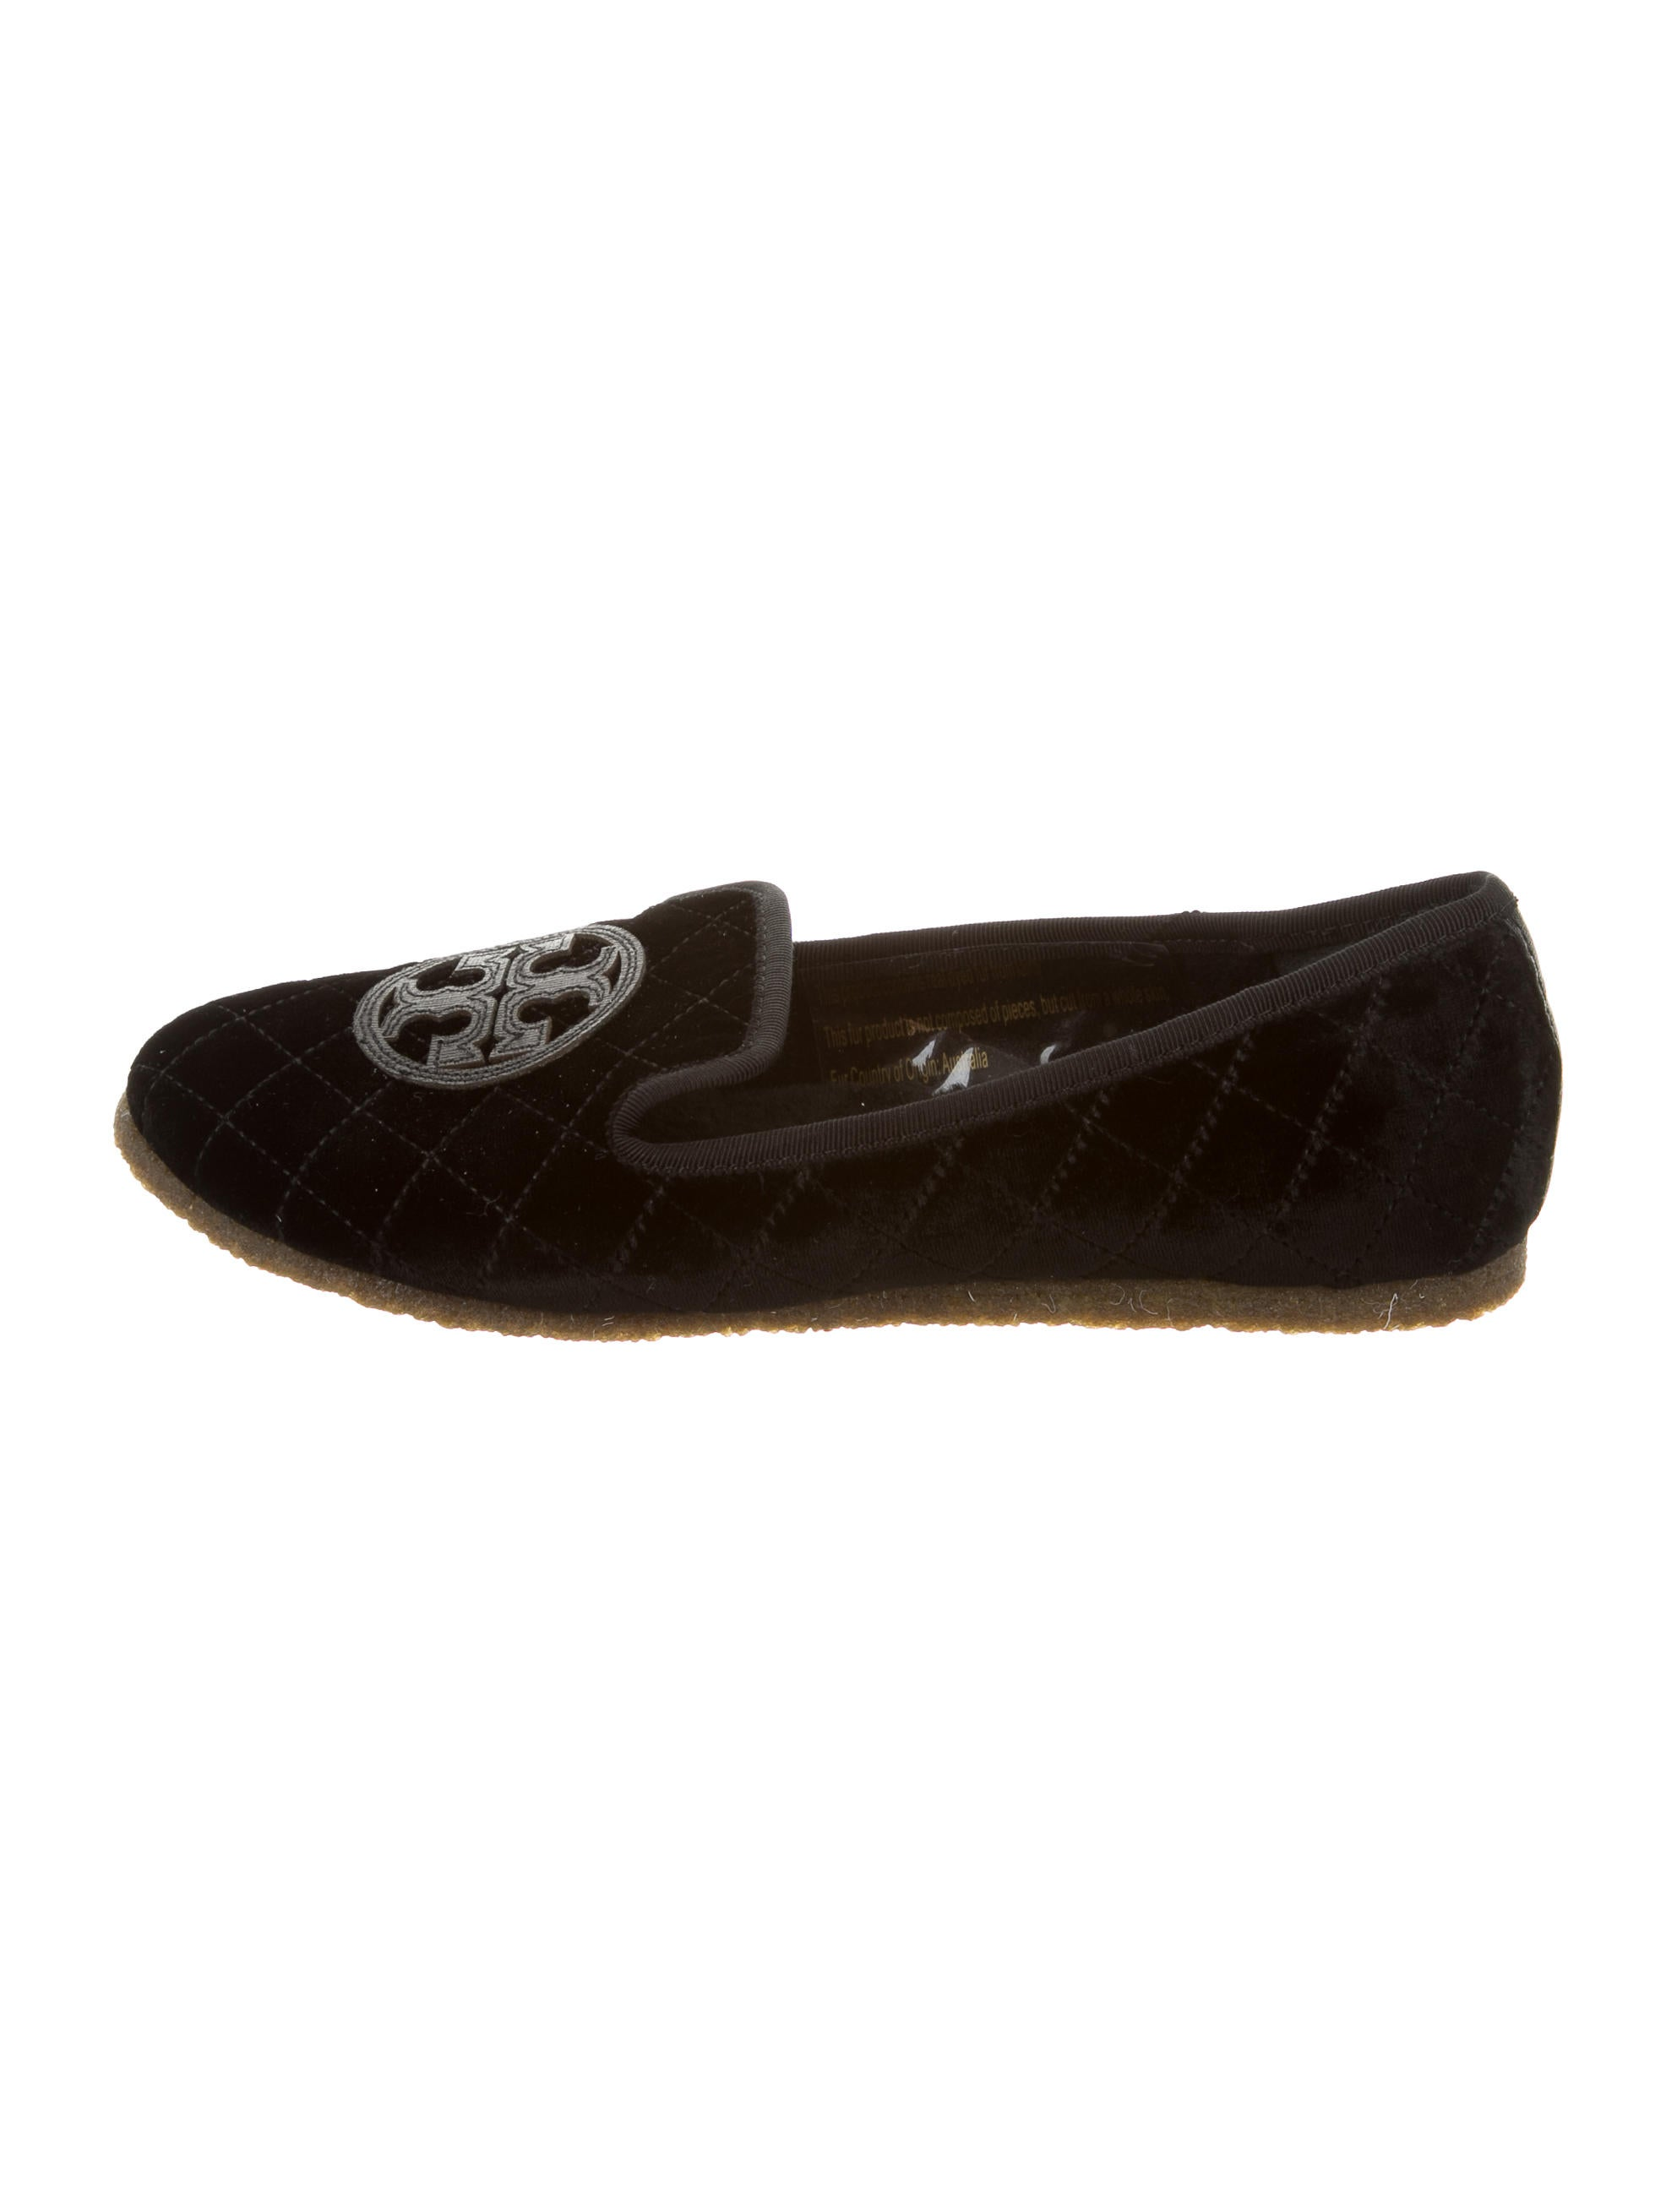 kumau.ml: smoking slippers women. A MUST HAVE: Velvet smoking flats are this seasons hottest shoe! Kmeioo Slip On Loafers,Womens Embroidery Mule Shoes with Plush Lamb Fur Velvet Backless Pointed Toe Mule Slides. by Kmeioo. $ $ 58 .